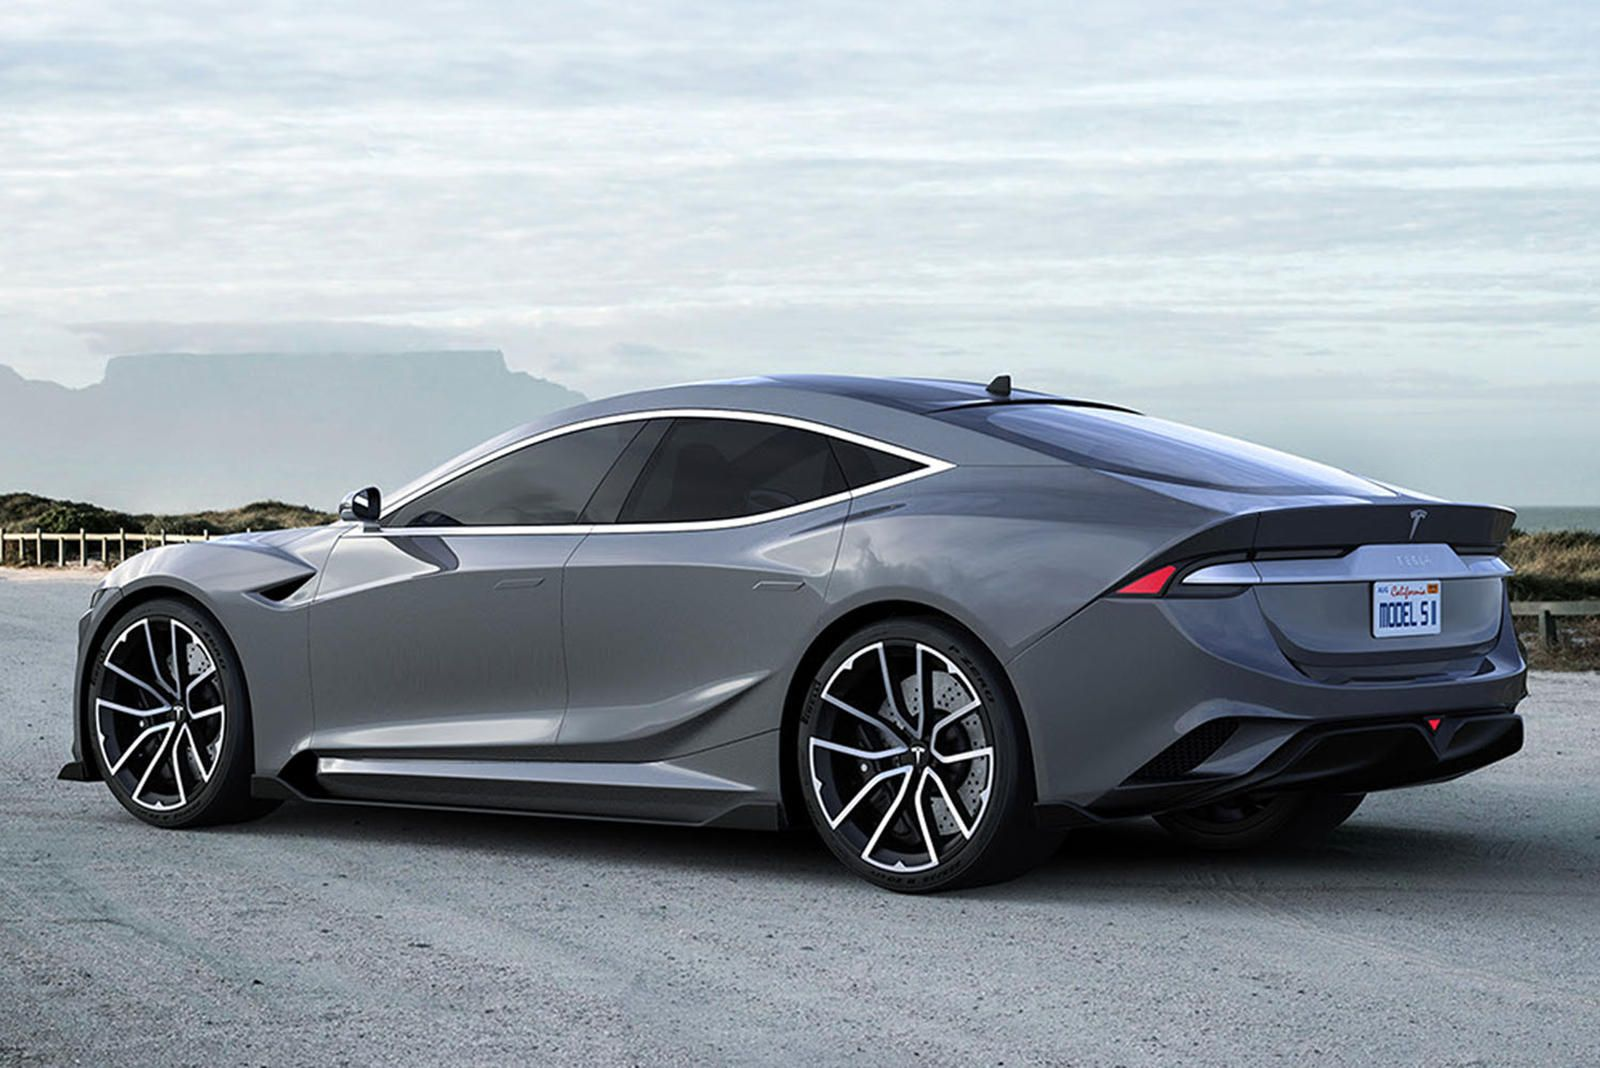 All New Tesla Model S Could Look Like This It S Time The Californian Ev Got A New Look Tesla Model S Tesla Model Tesla